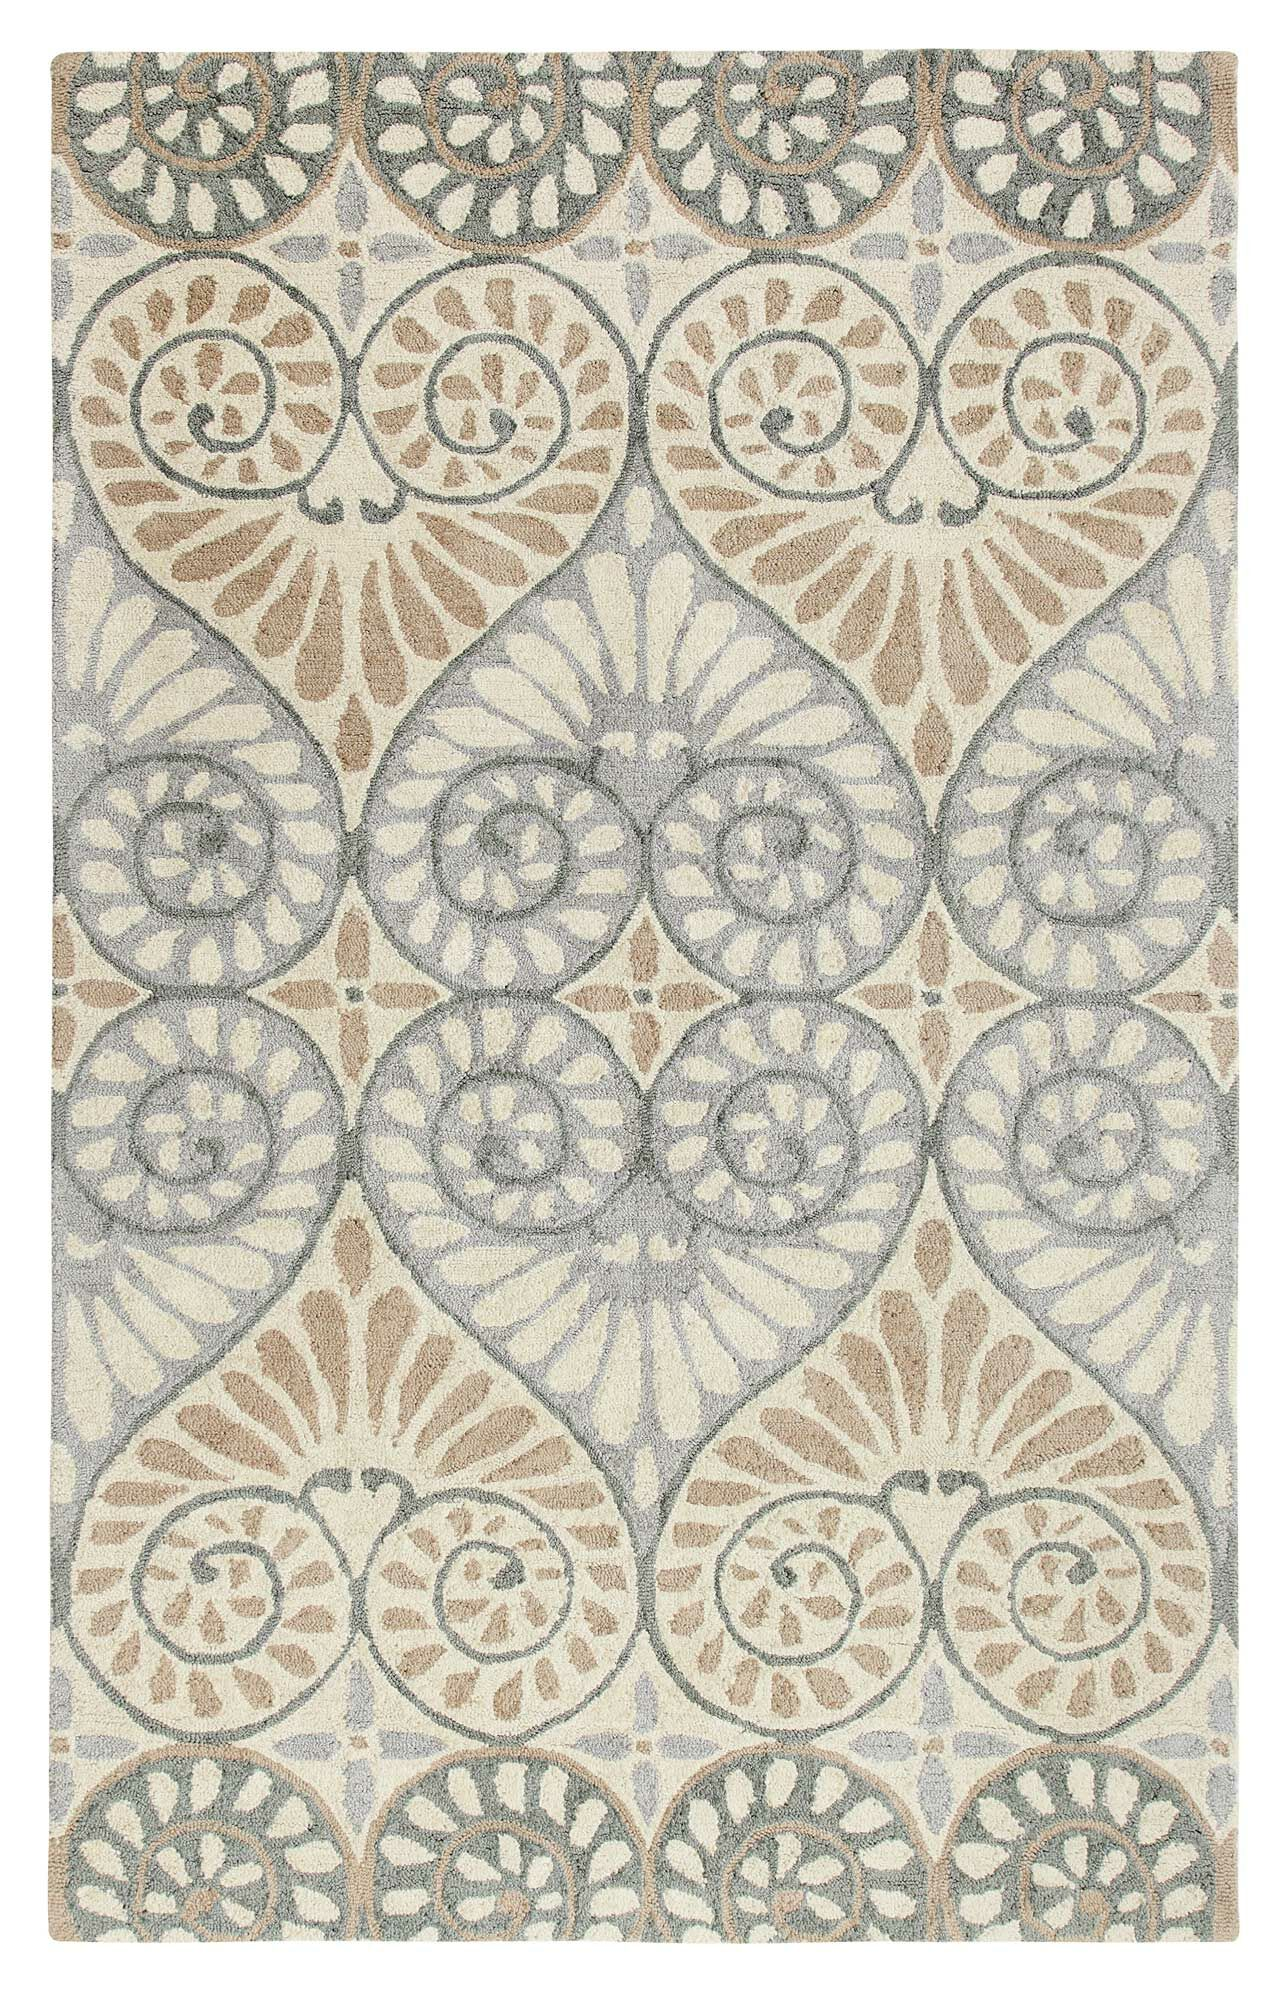 Dew Drop Hand-Tufted Pewter Area Rug Rug Size: Rectangle 8' x 10'